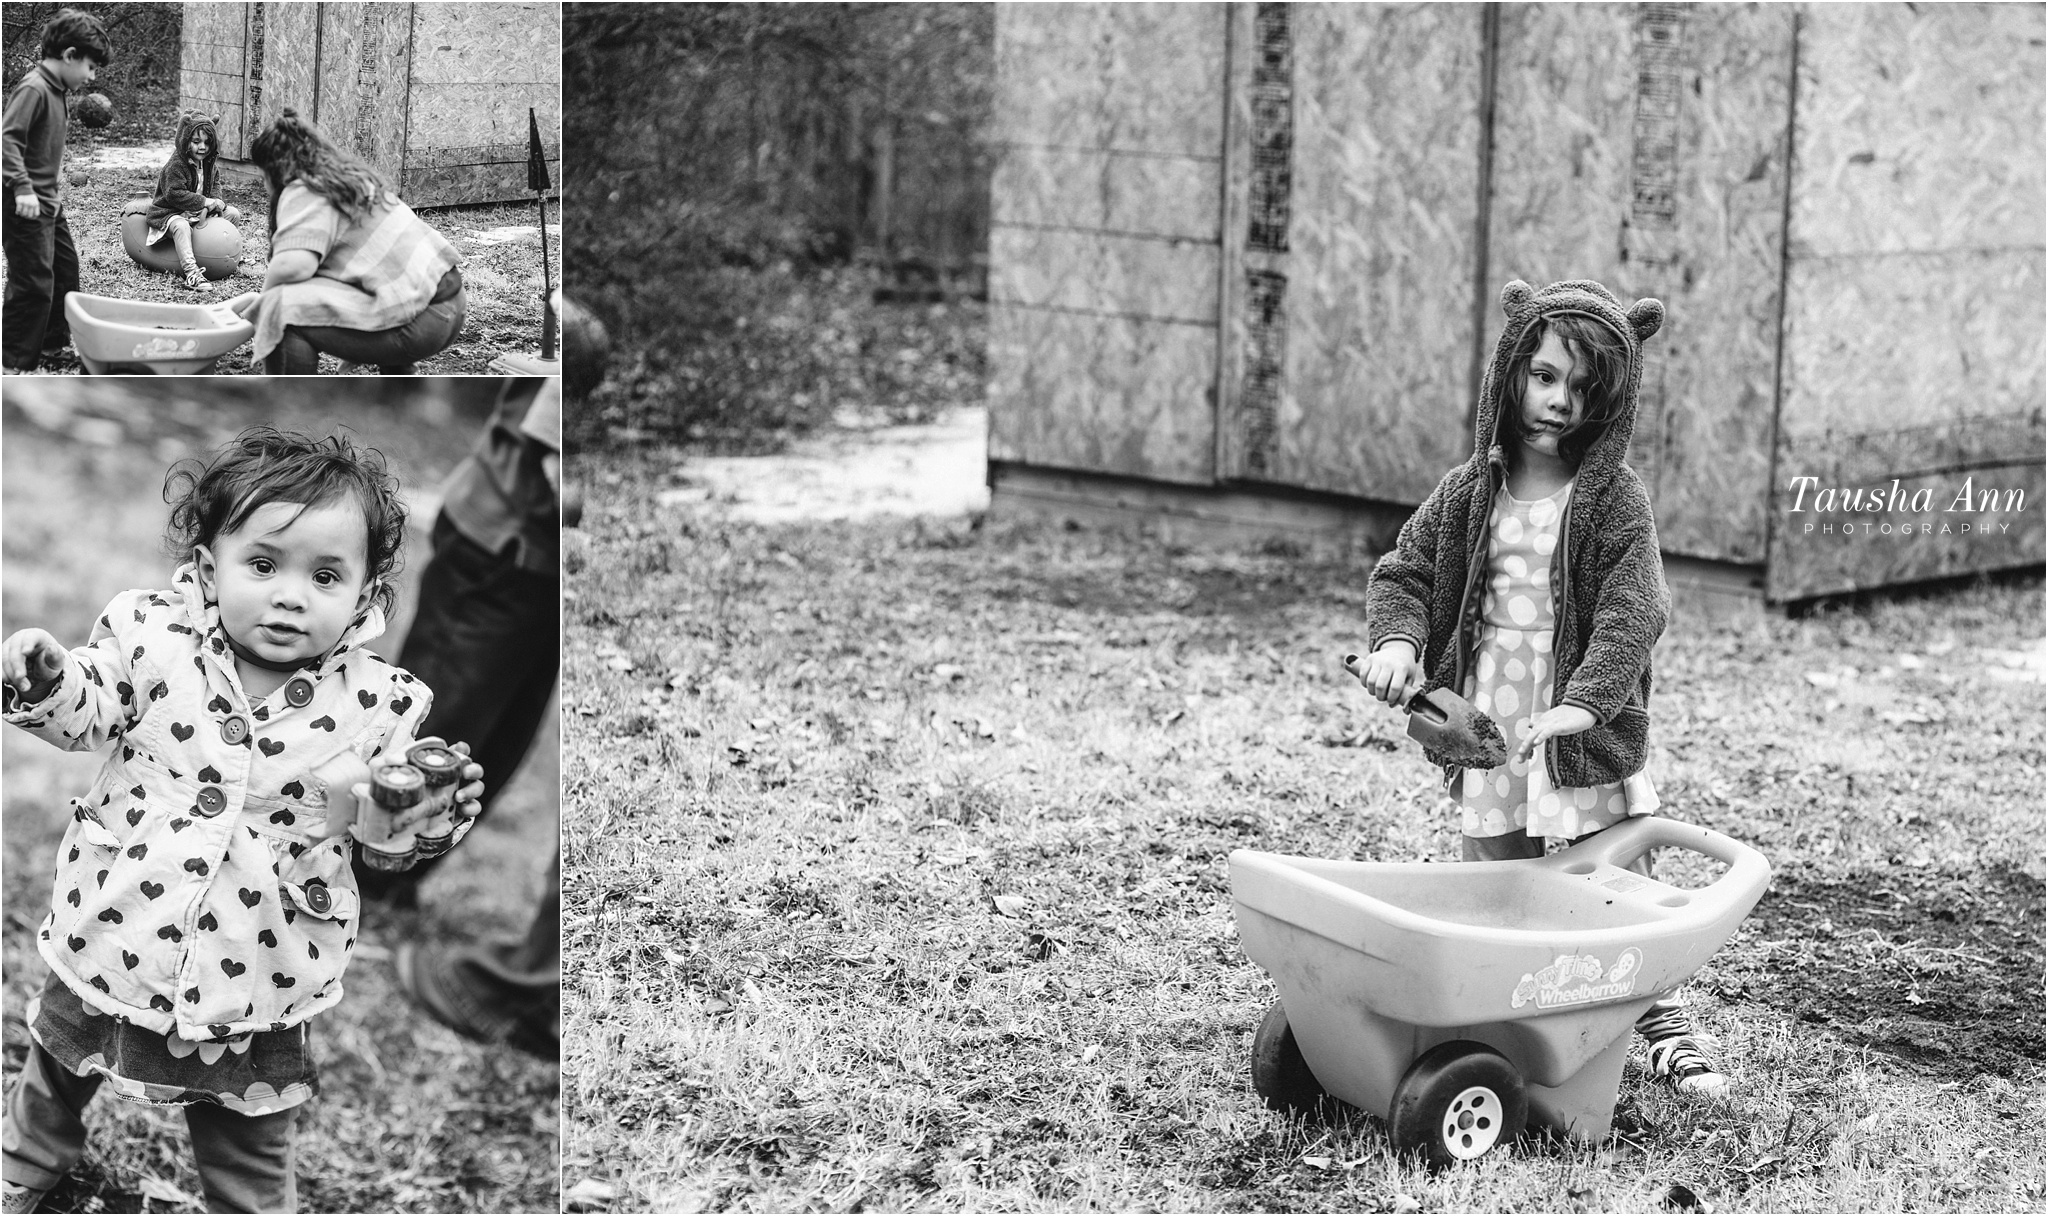 Life_At_Sunset_Lifestyle_Session_Tausha_Ann_Photography_Nashville_TN_Family_Photographer_Kids_Hanging_Out-Outdoors_Backyard_Black_And_White-6